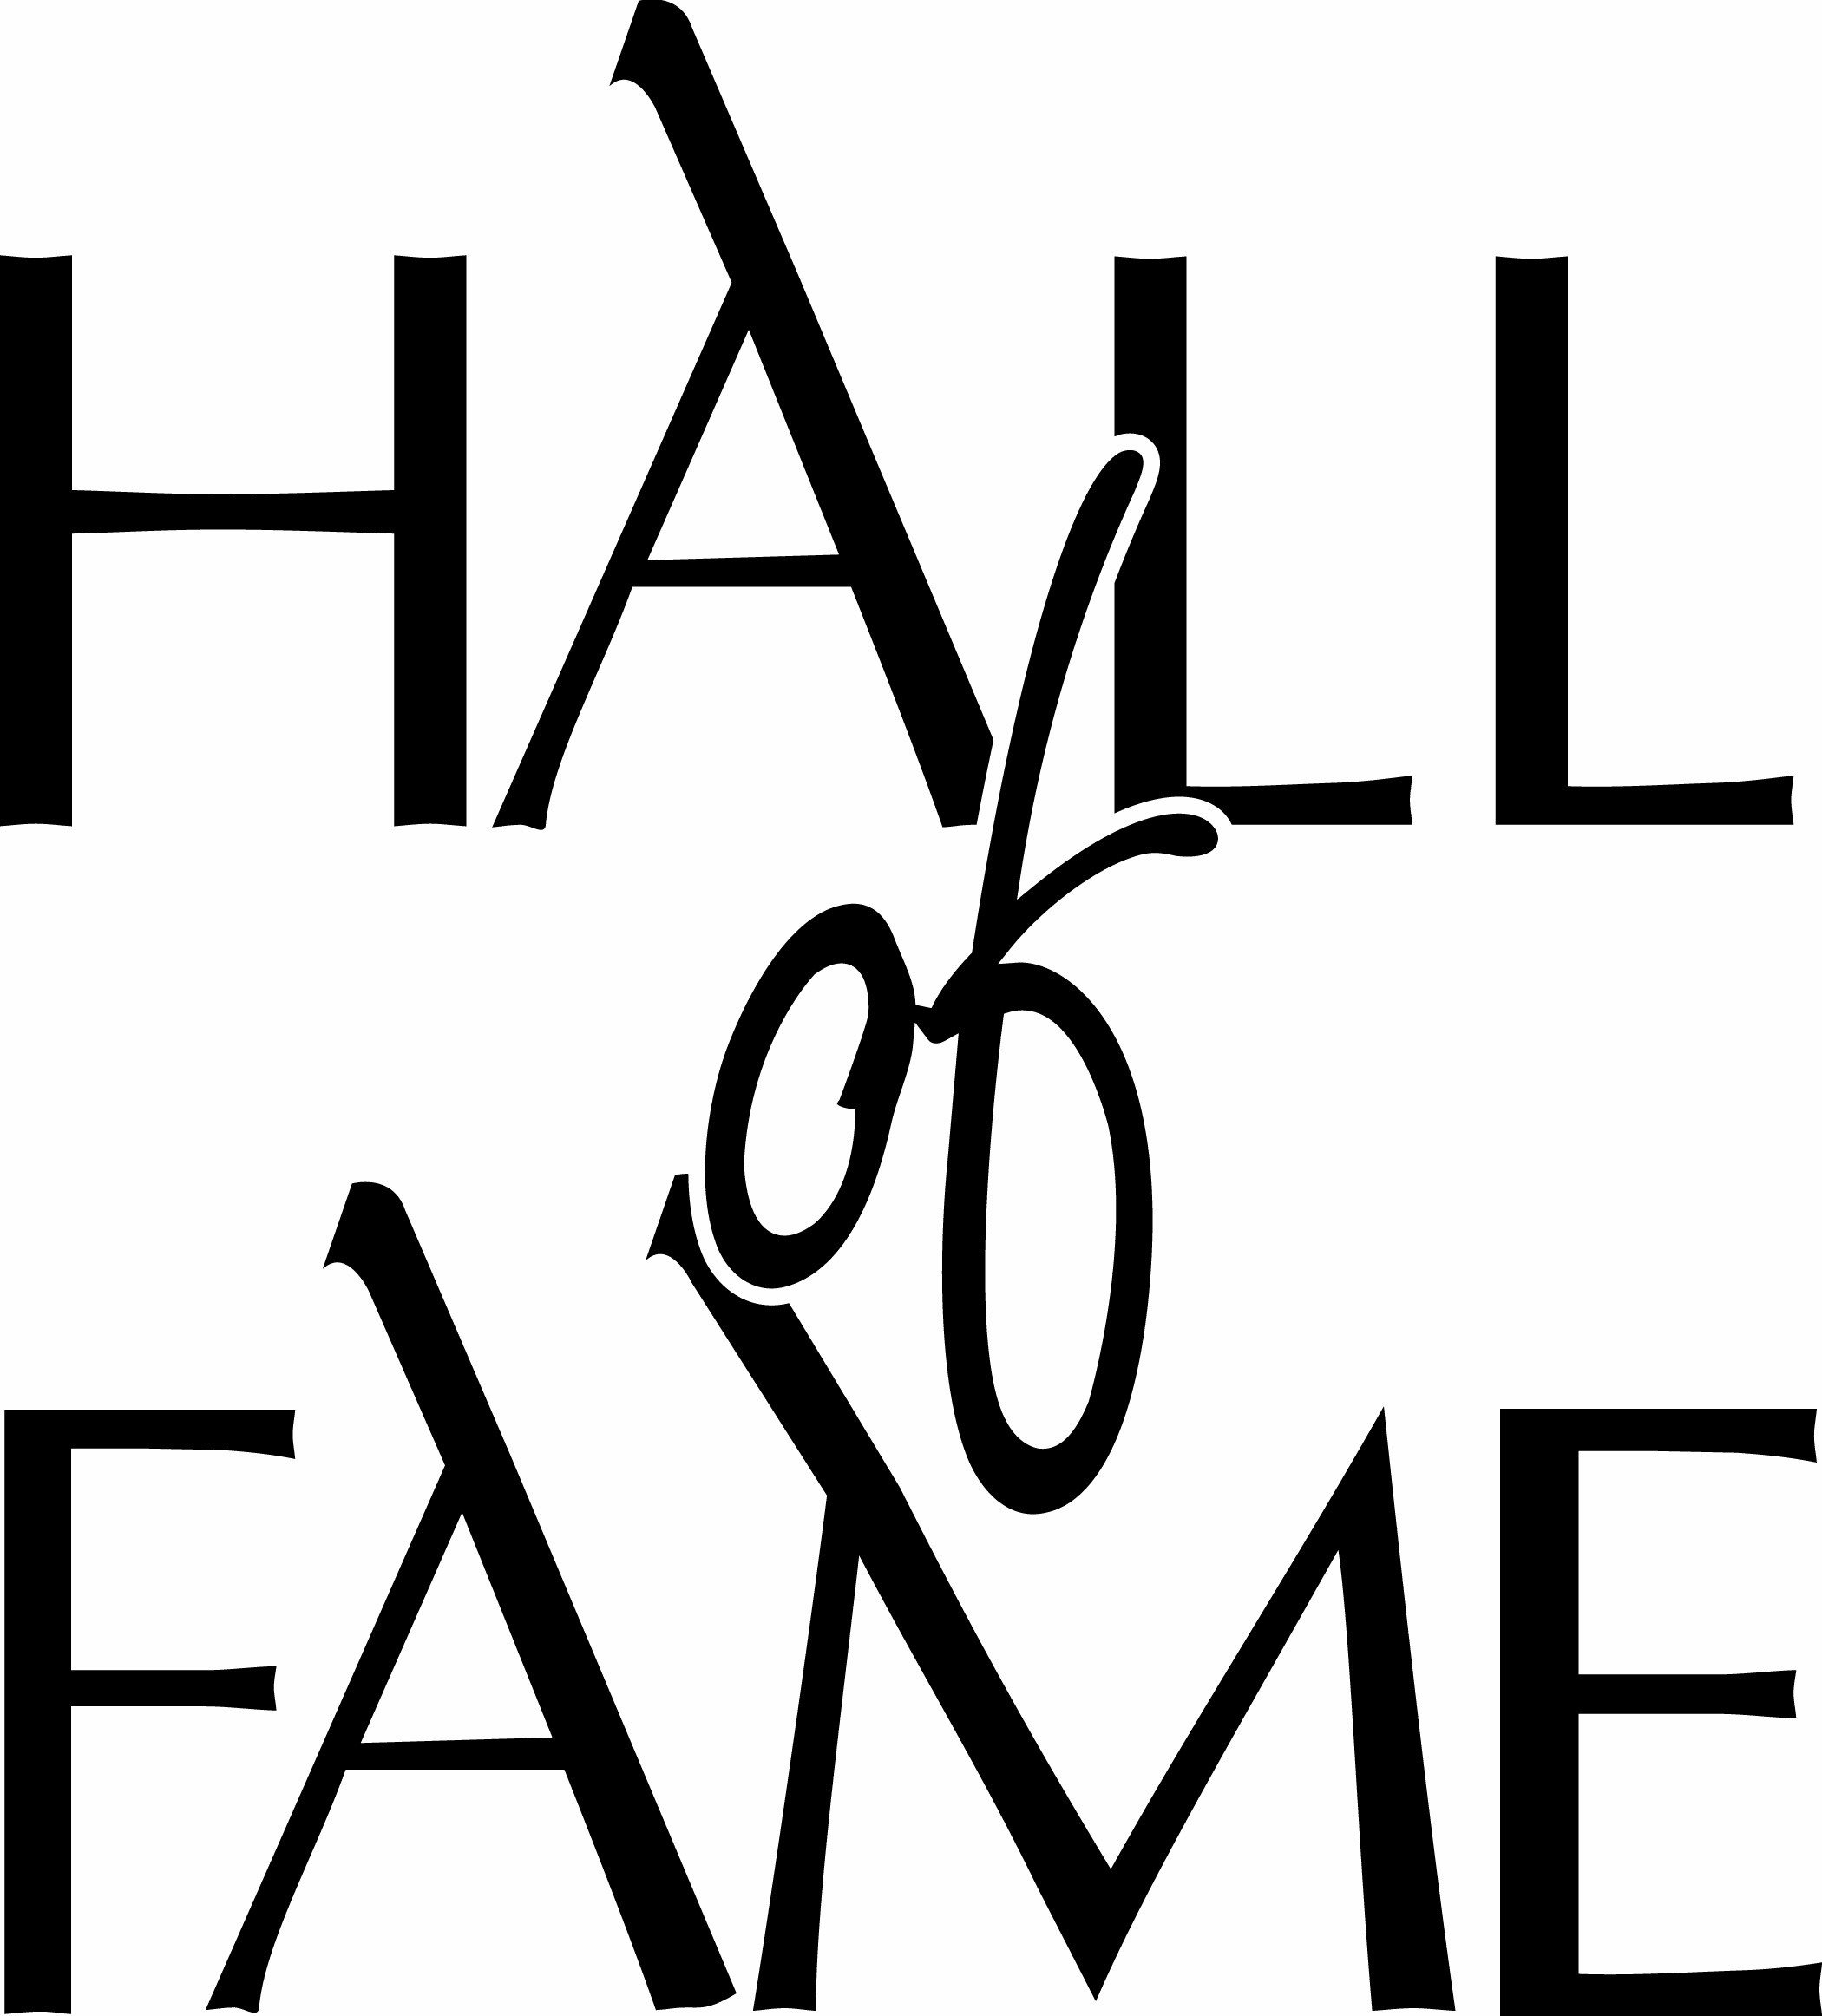 Hall of fame clipart.